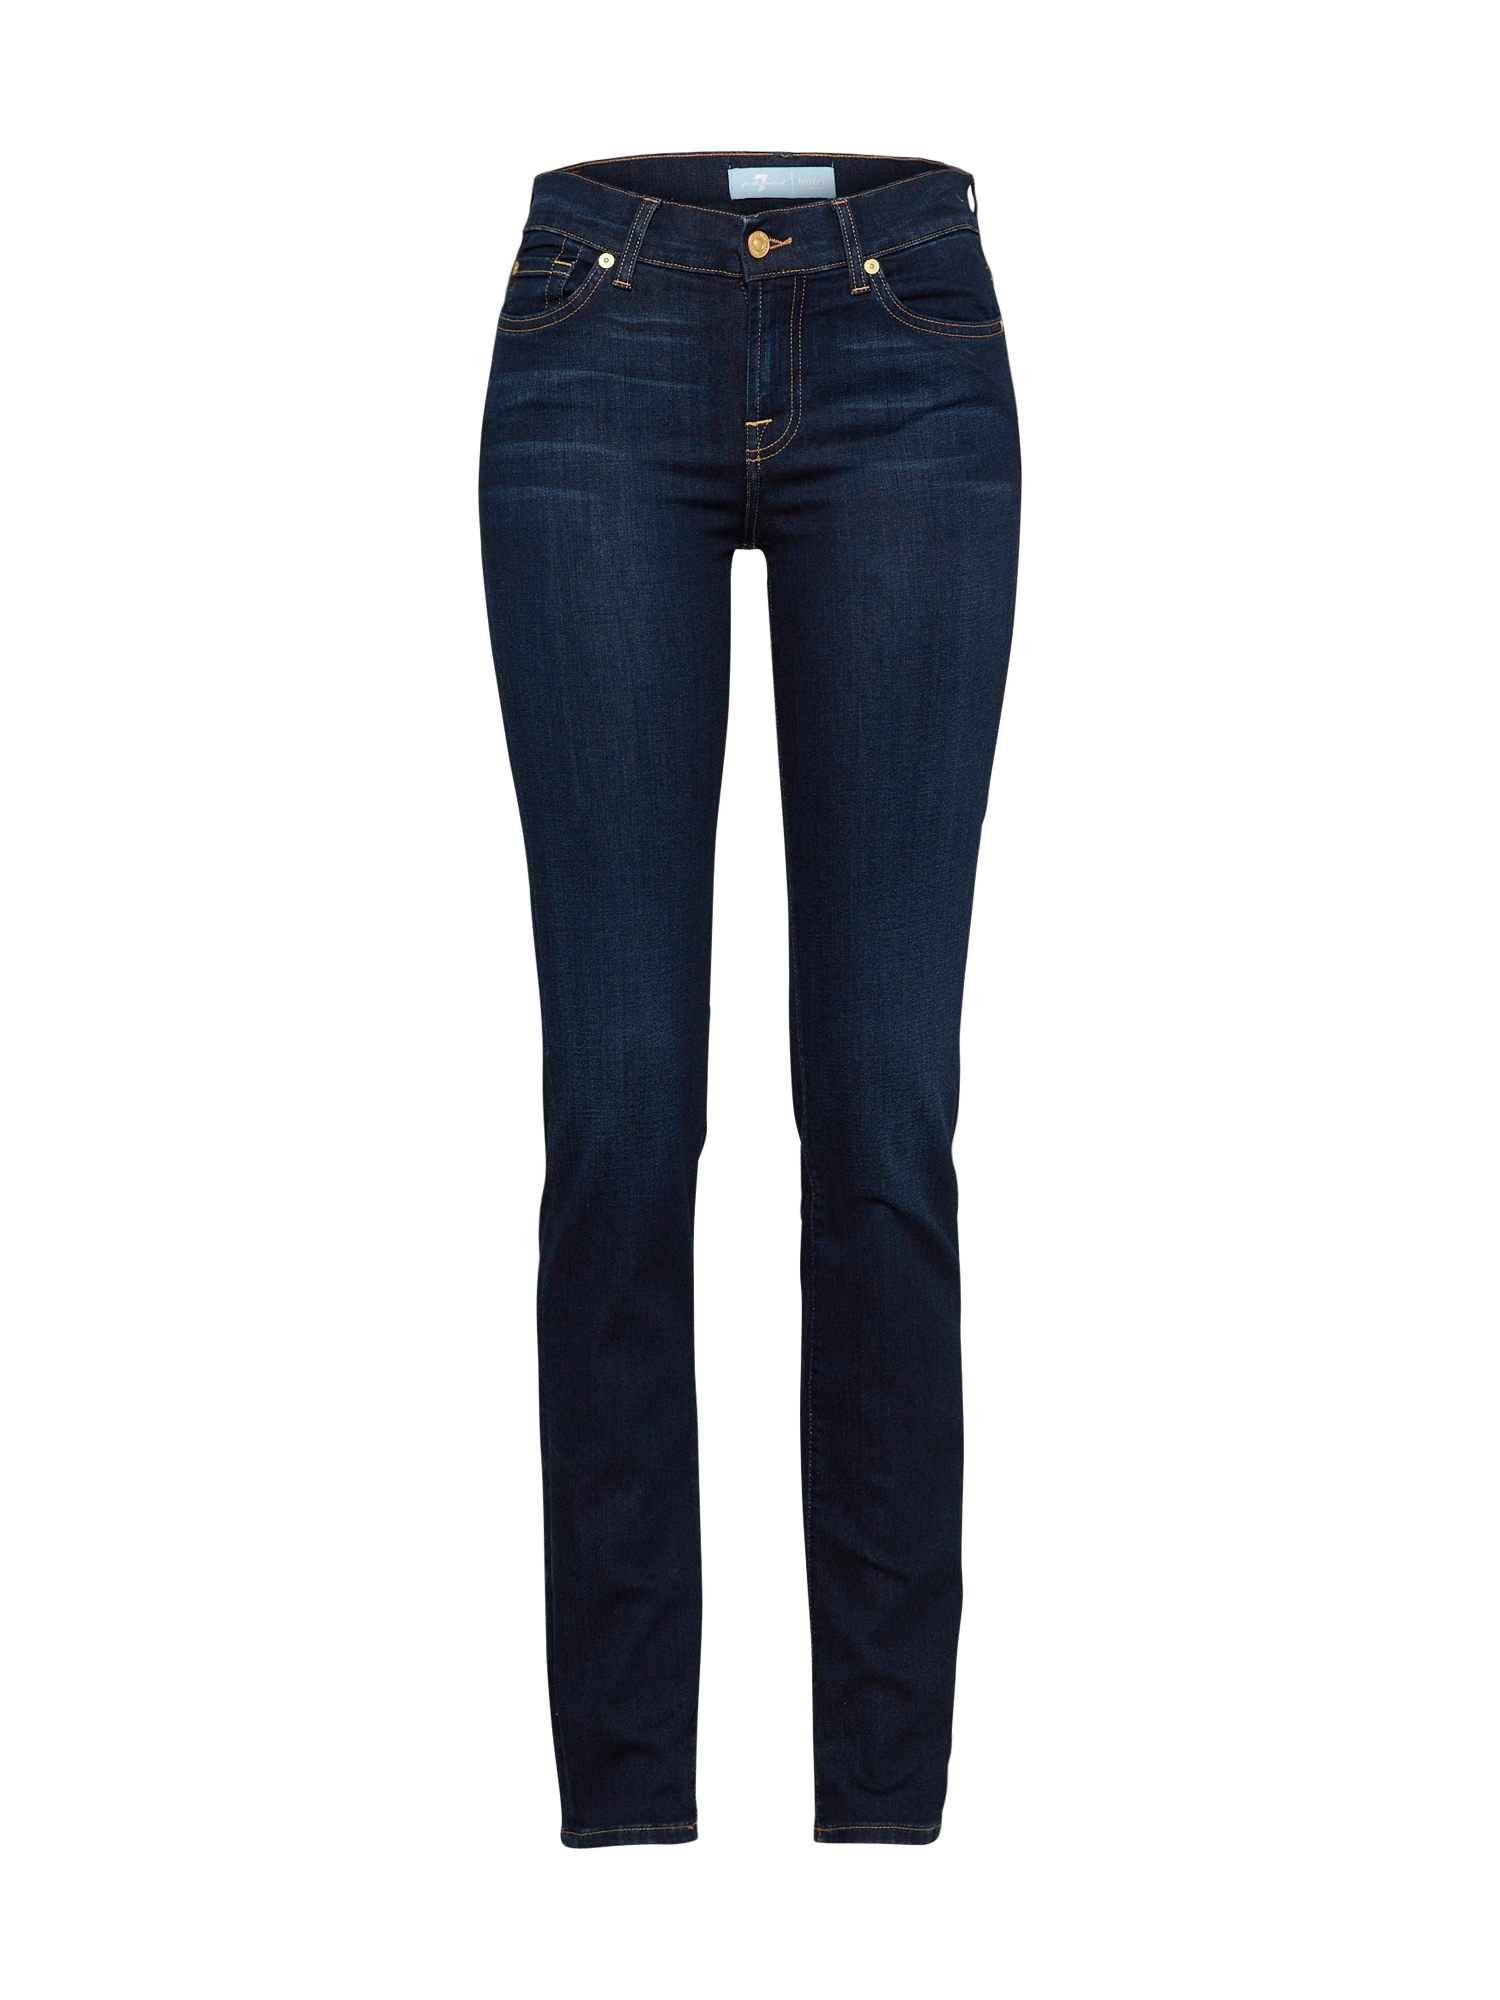 7 for all mankind Džínsy 'ROXANNE'  modrá denim